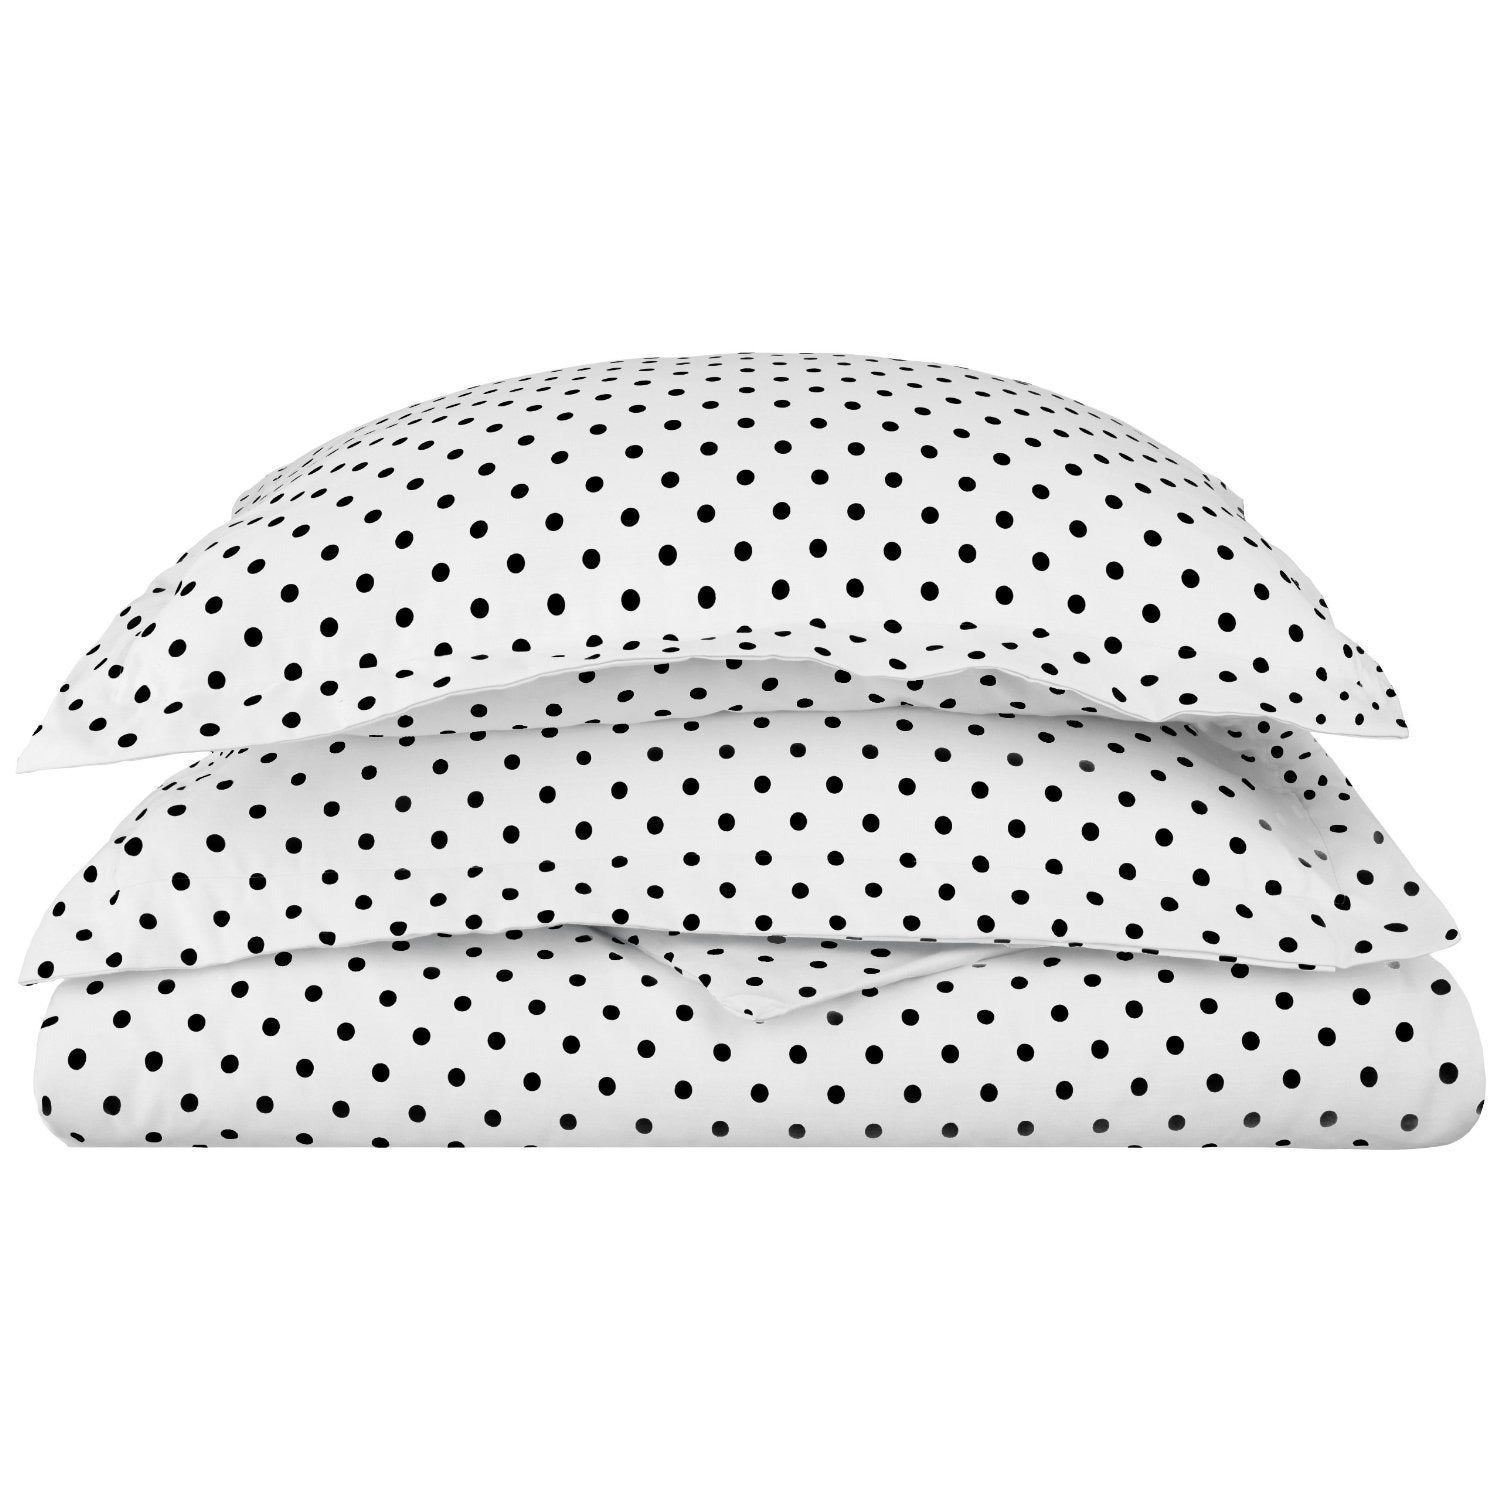 double cover silver duvet single anderwood pink polka bedding and dots set dot white